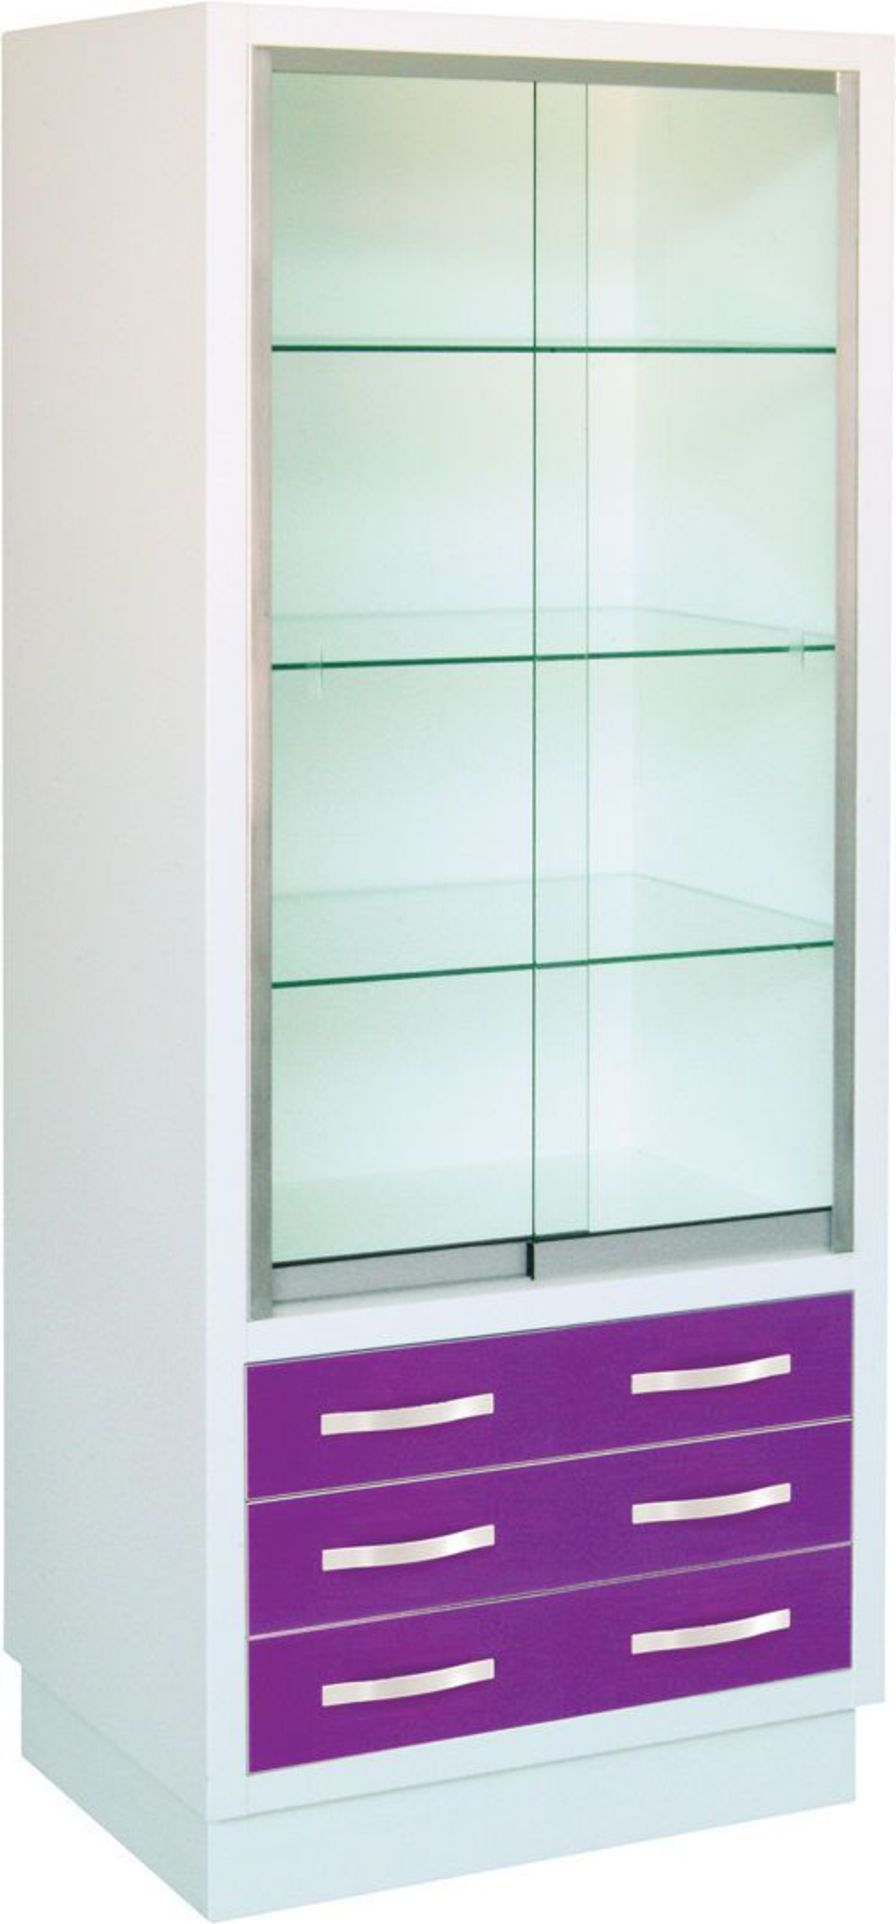 Medical instrument cabinet with drawer 24200 Inmoclinc